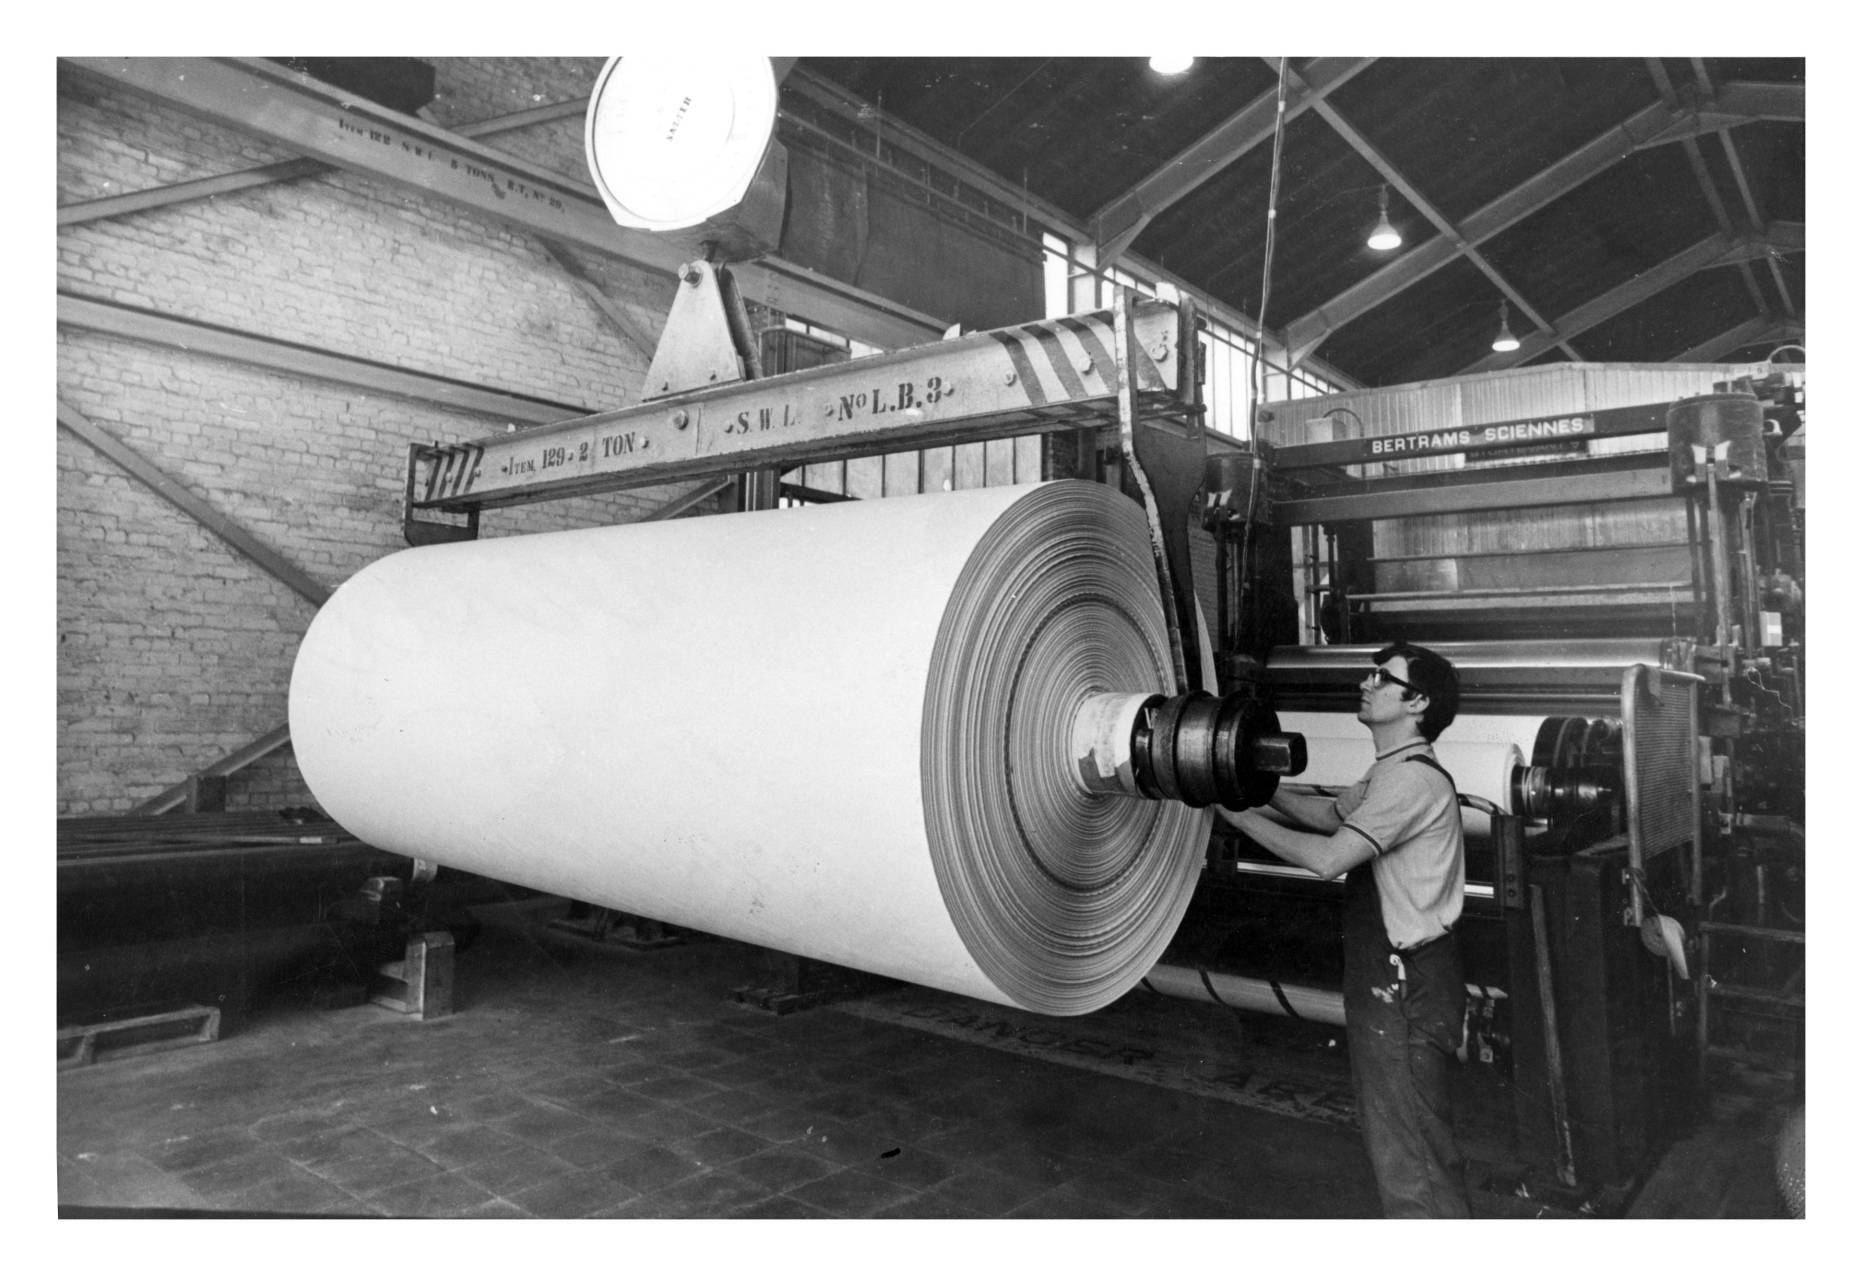 The reel-up of No.3 machine at Inverurie's Thomas Tait Paper Mill in Inverurie